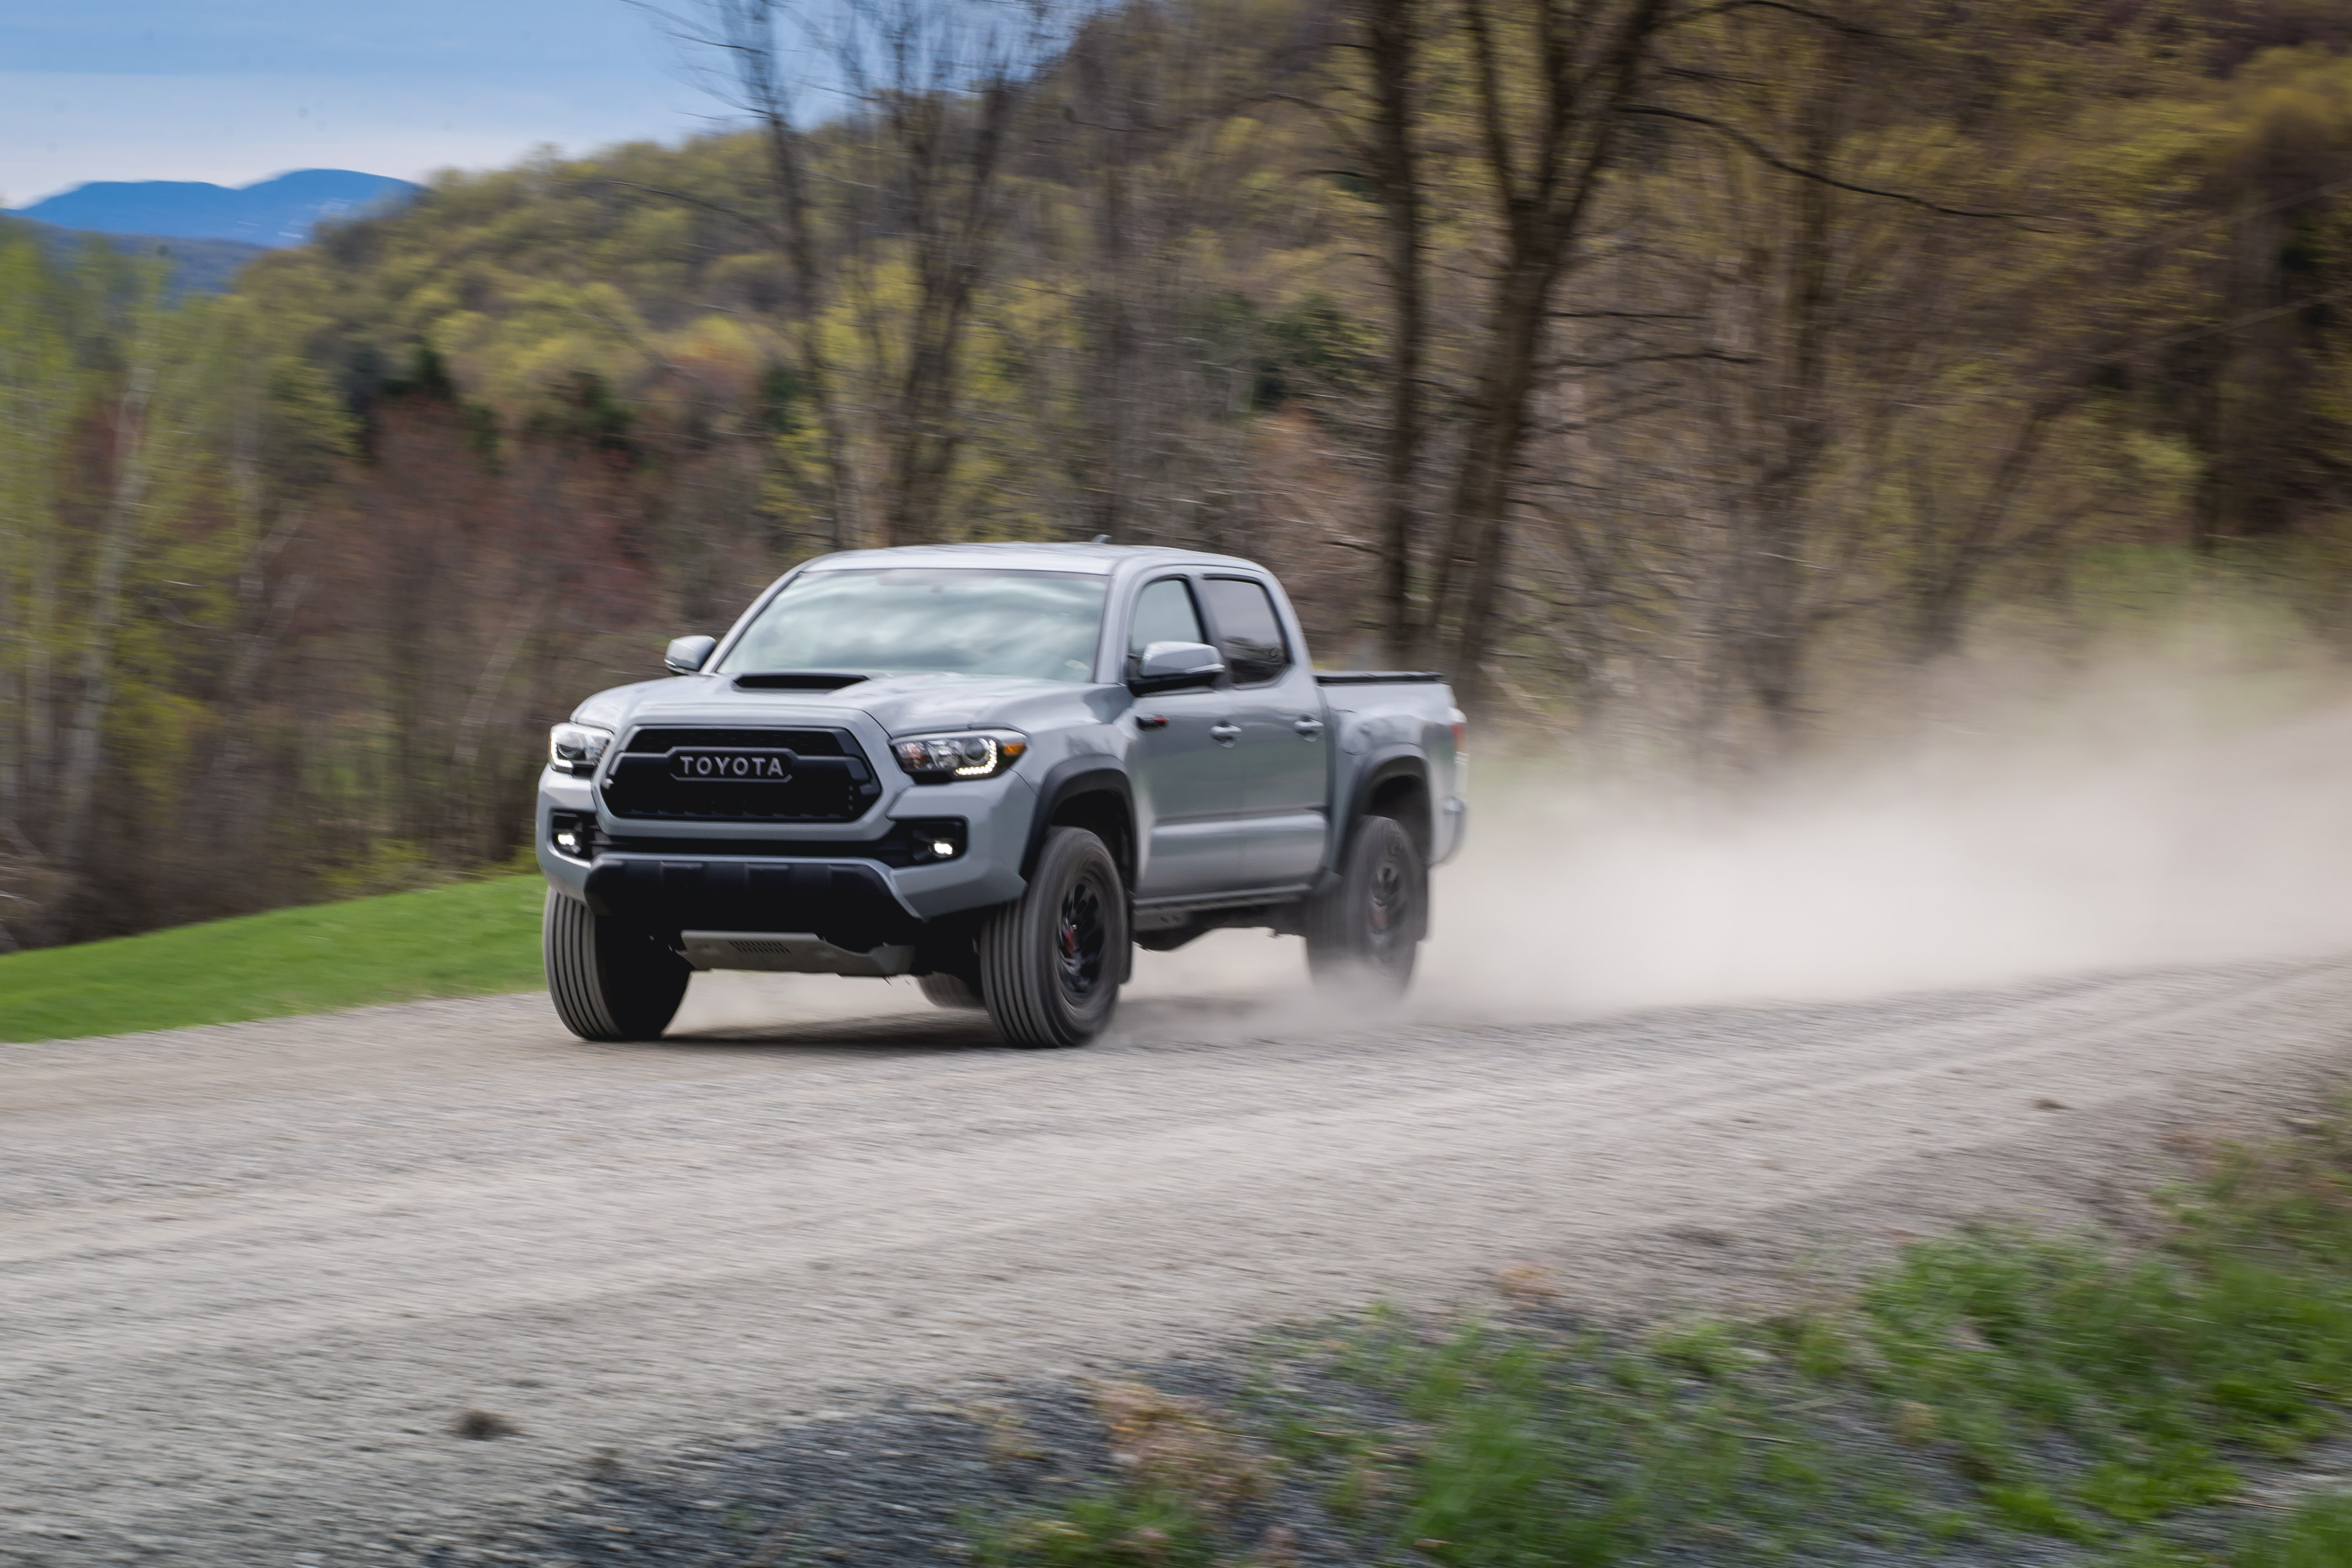 Tacoma Towing Capacity >> The 2017 Toyota Tacoma TRD Pro Is The Bro Truck We All Need